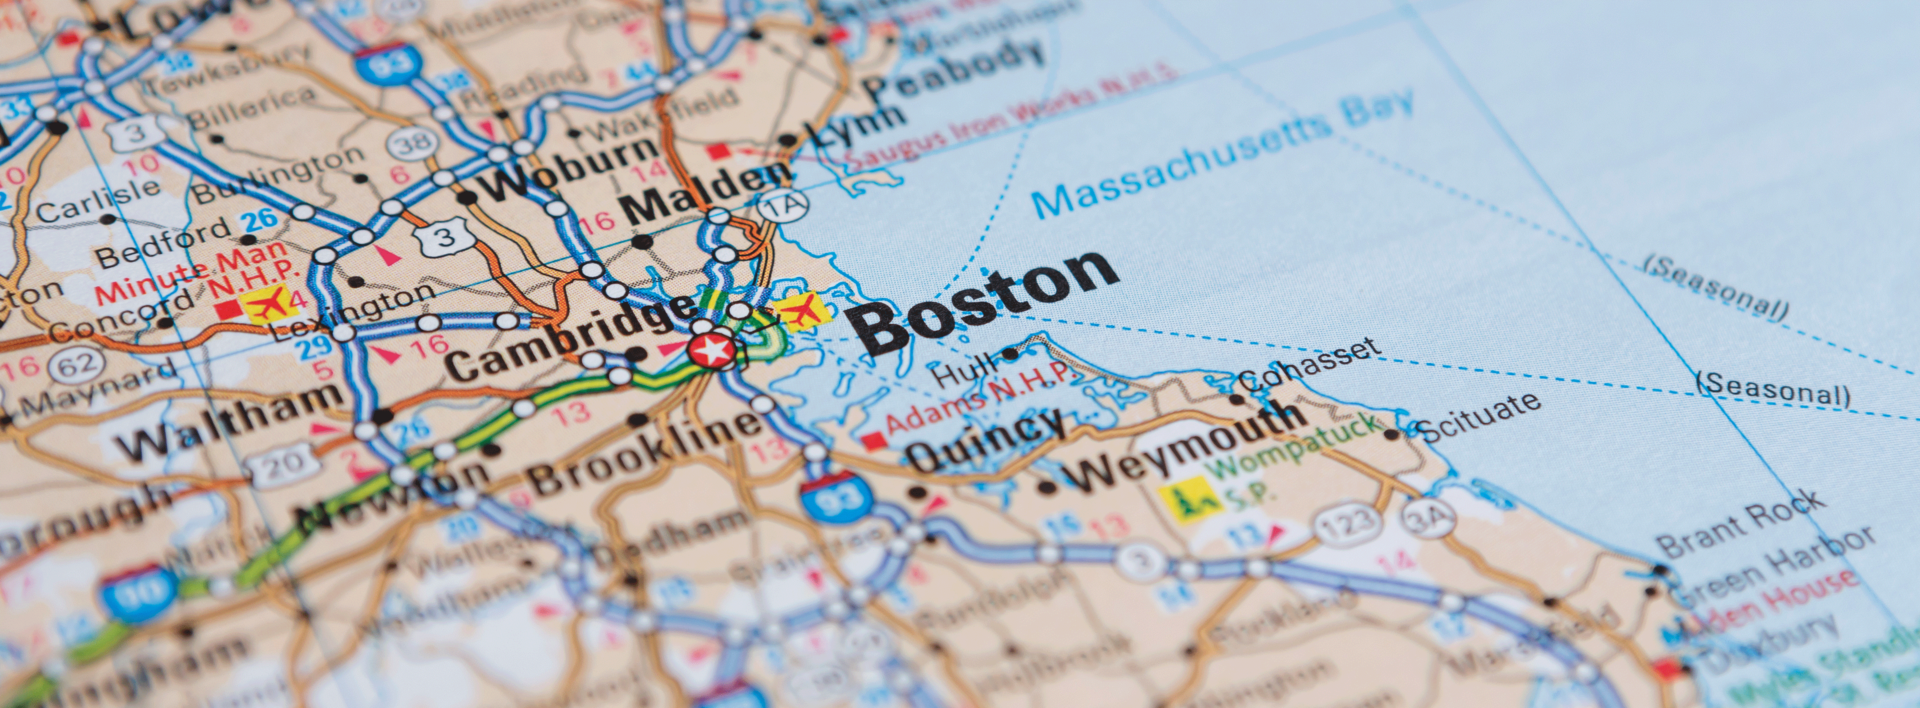 map of boston ivf locations